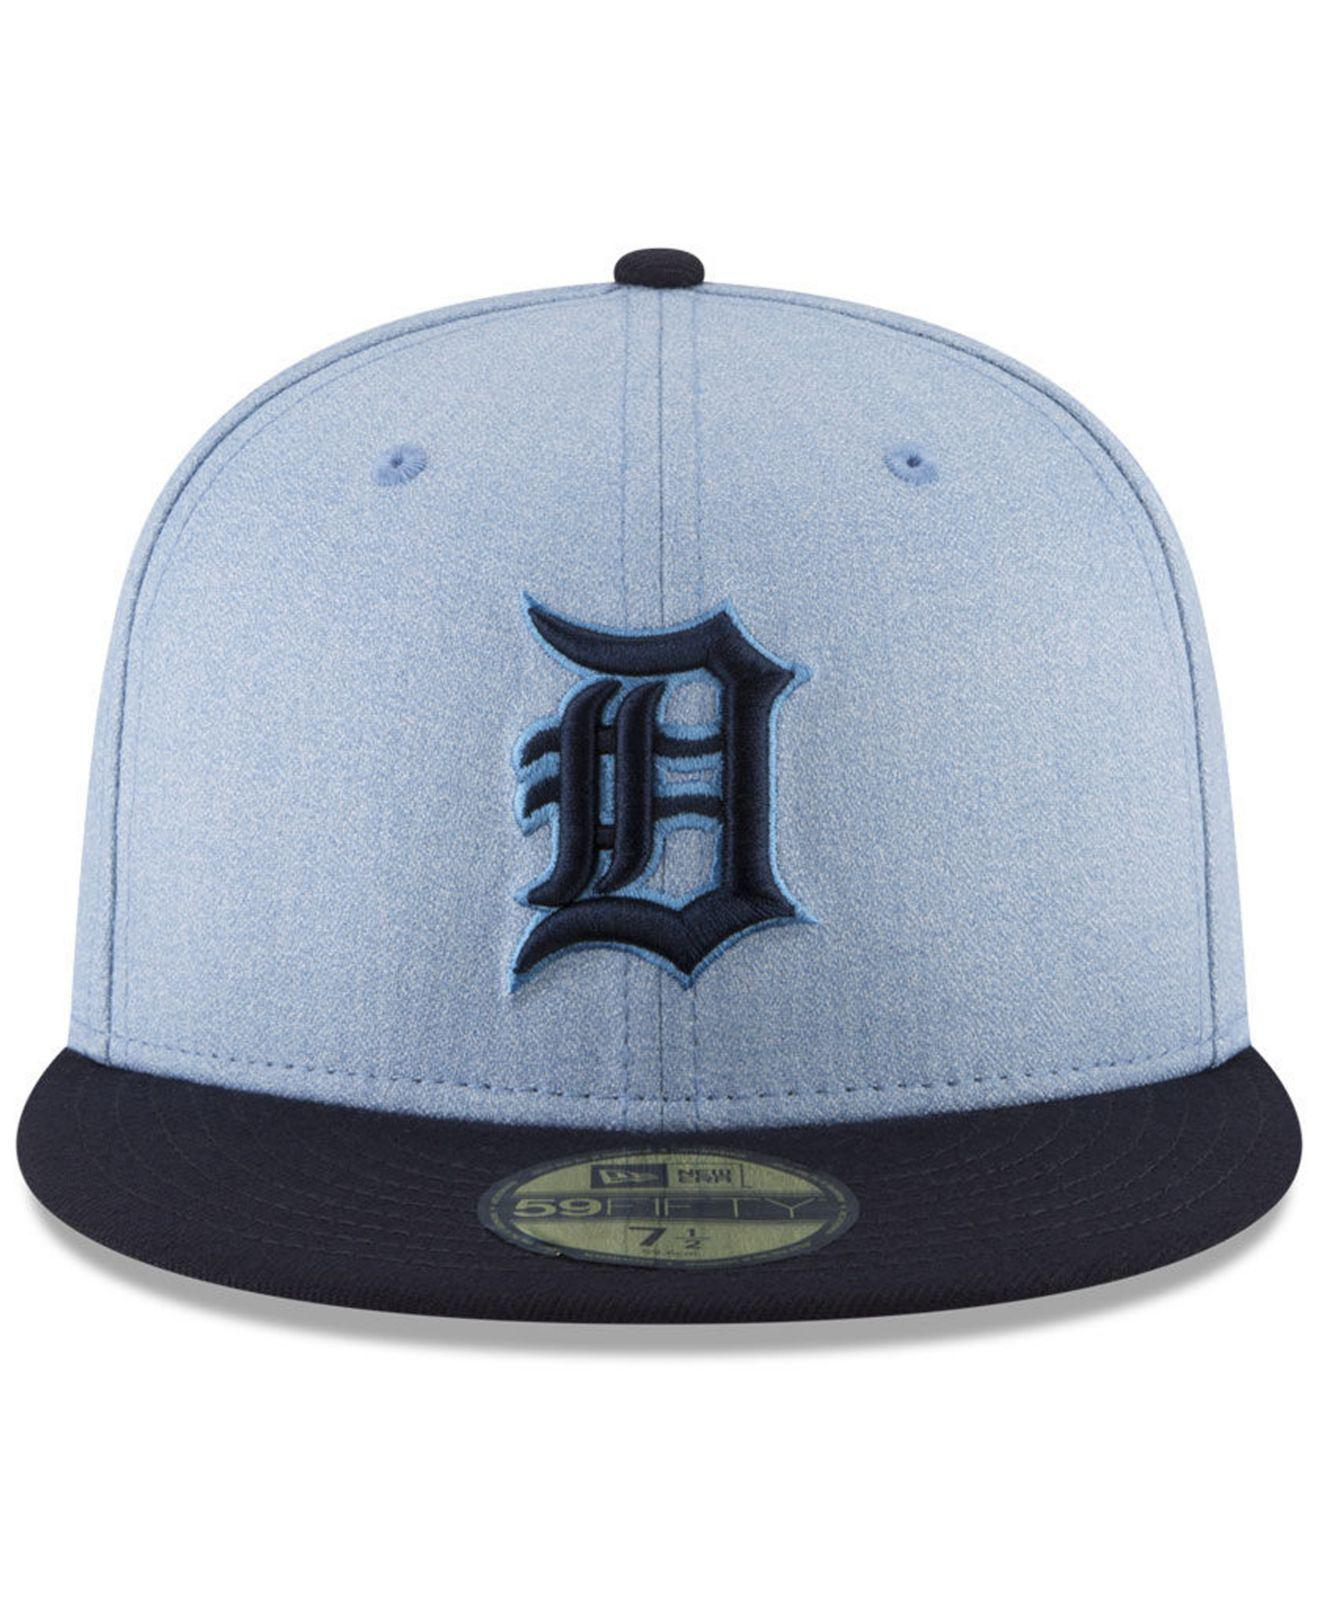 Lyst - Ktz Detroit Tigers Father s Day 59fifty Fitted Cap 2018 in Blue for  Men 8296a8da5b28